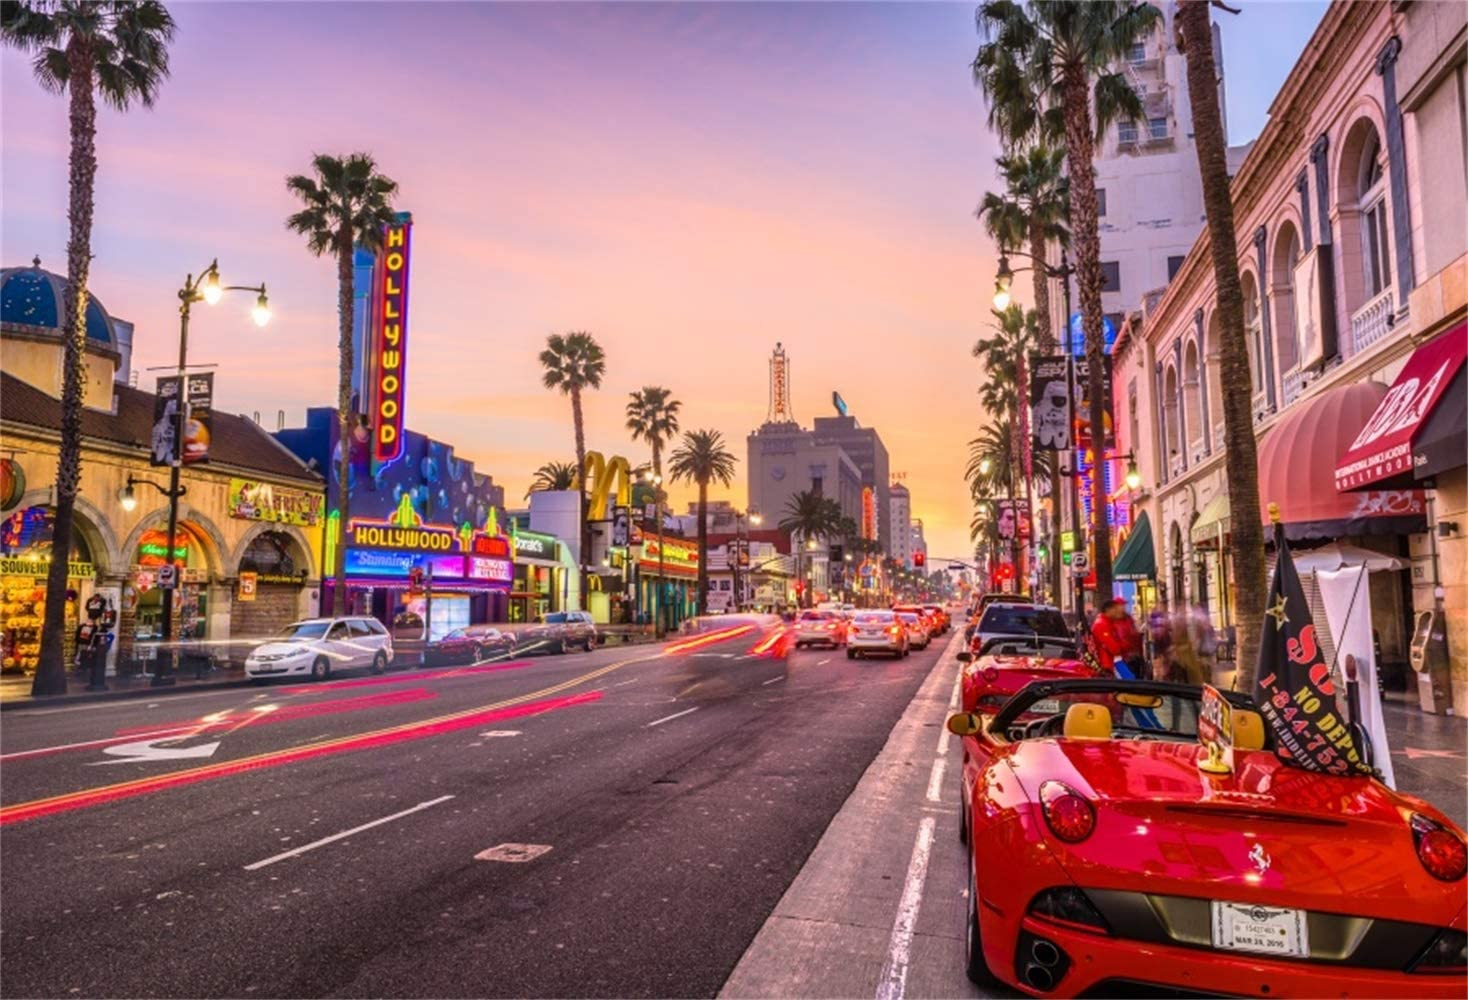 Laeacco 10x7ft Dusk Hollywood Boulevard Background American City Rush Hour Traffic Vinyl Photography Backdrop Red Cars Street Lamp Personal Artistic Photo Film Video Studio Los Angeles Postcard